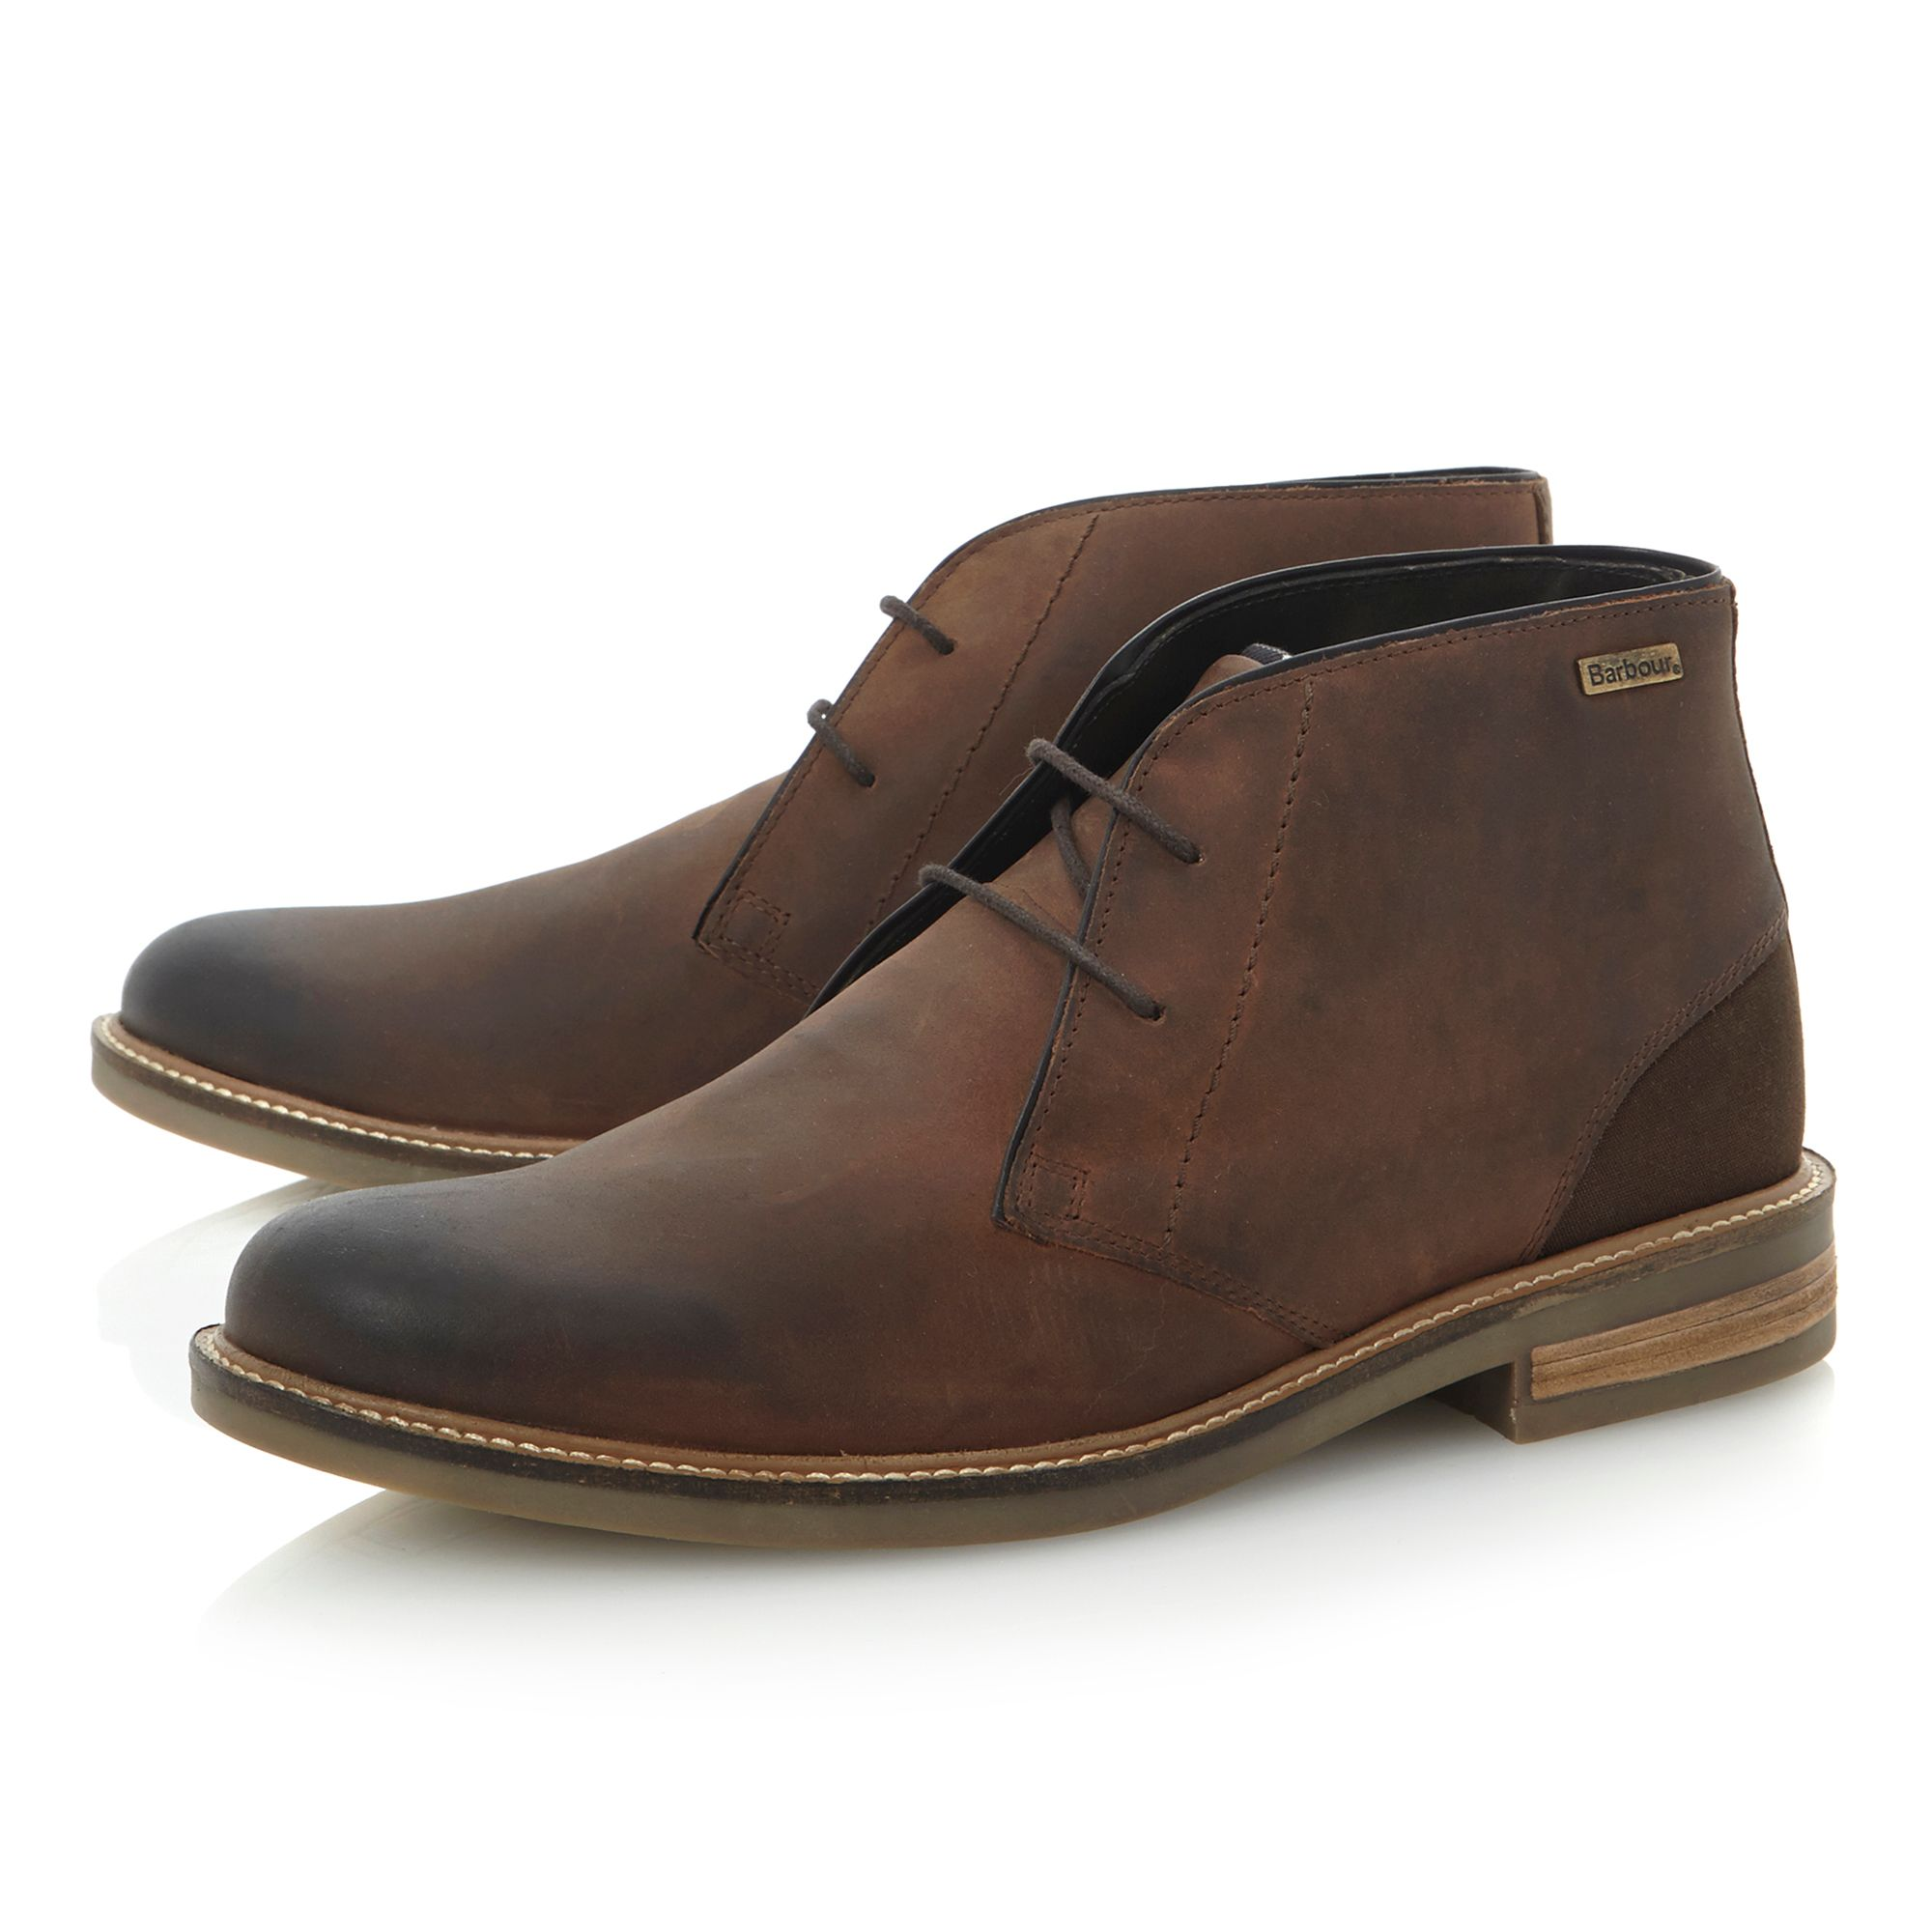 Readhead-plain toe chukka boot